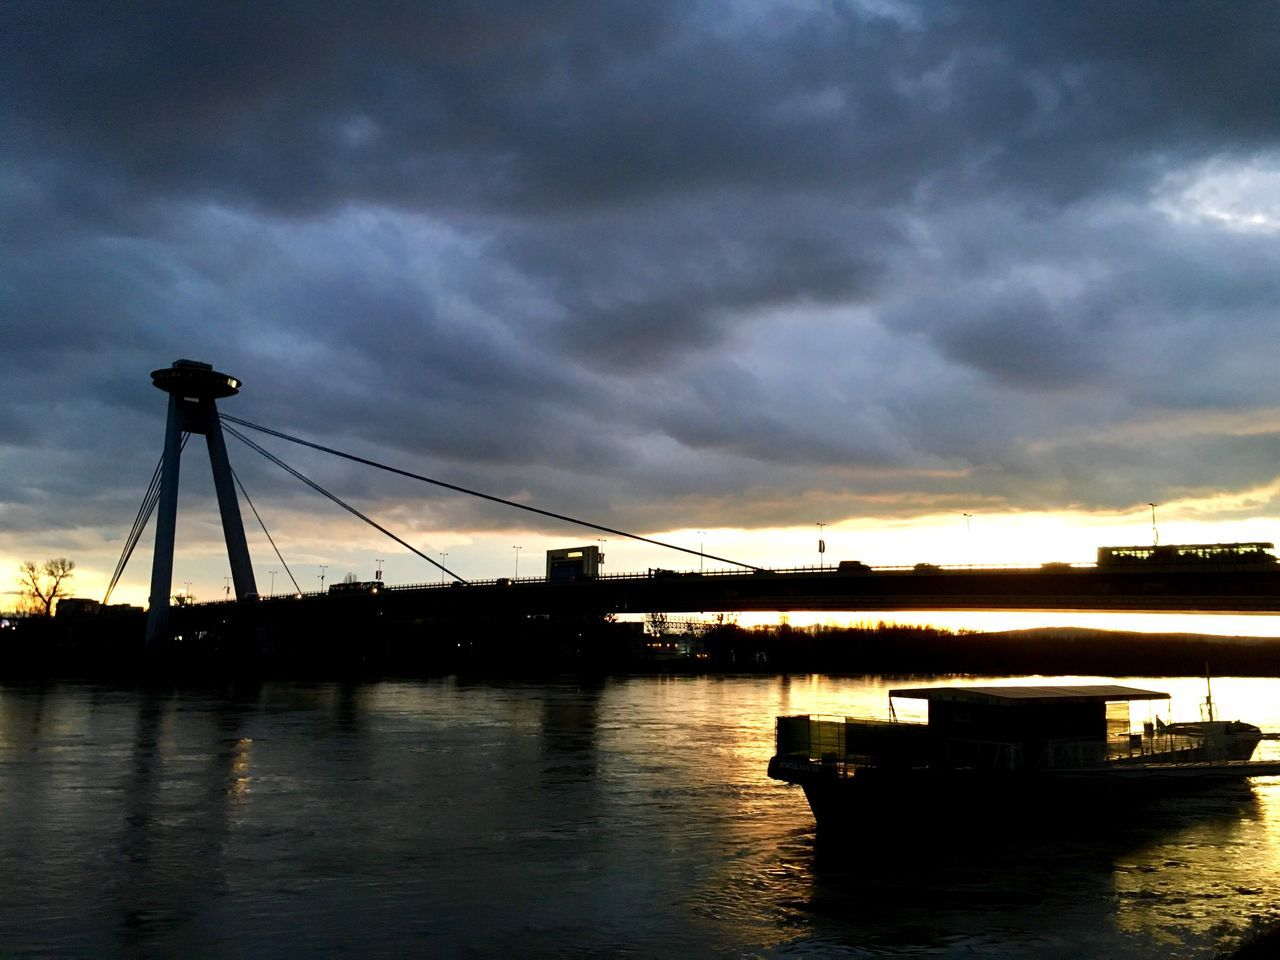 transportation, cloud - sky, connection, sky, bridge - man made structure, water, mode of transport, suspension bridge, sunset, nautical vessel, built structure, architecture, dramatic sky, outdoors, weather, waterfront, travel destinations, river, no people, travel, silhouette, scenics, nature, beauty in nature, city, day